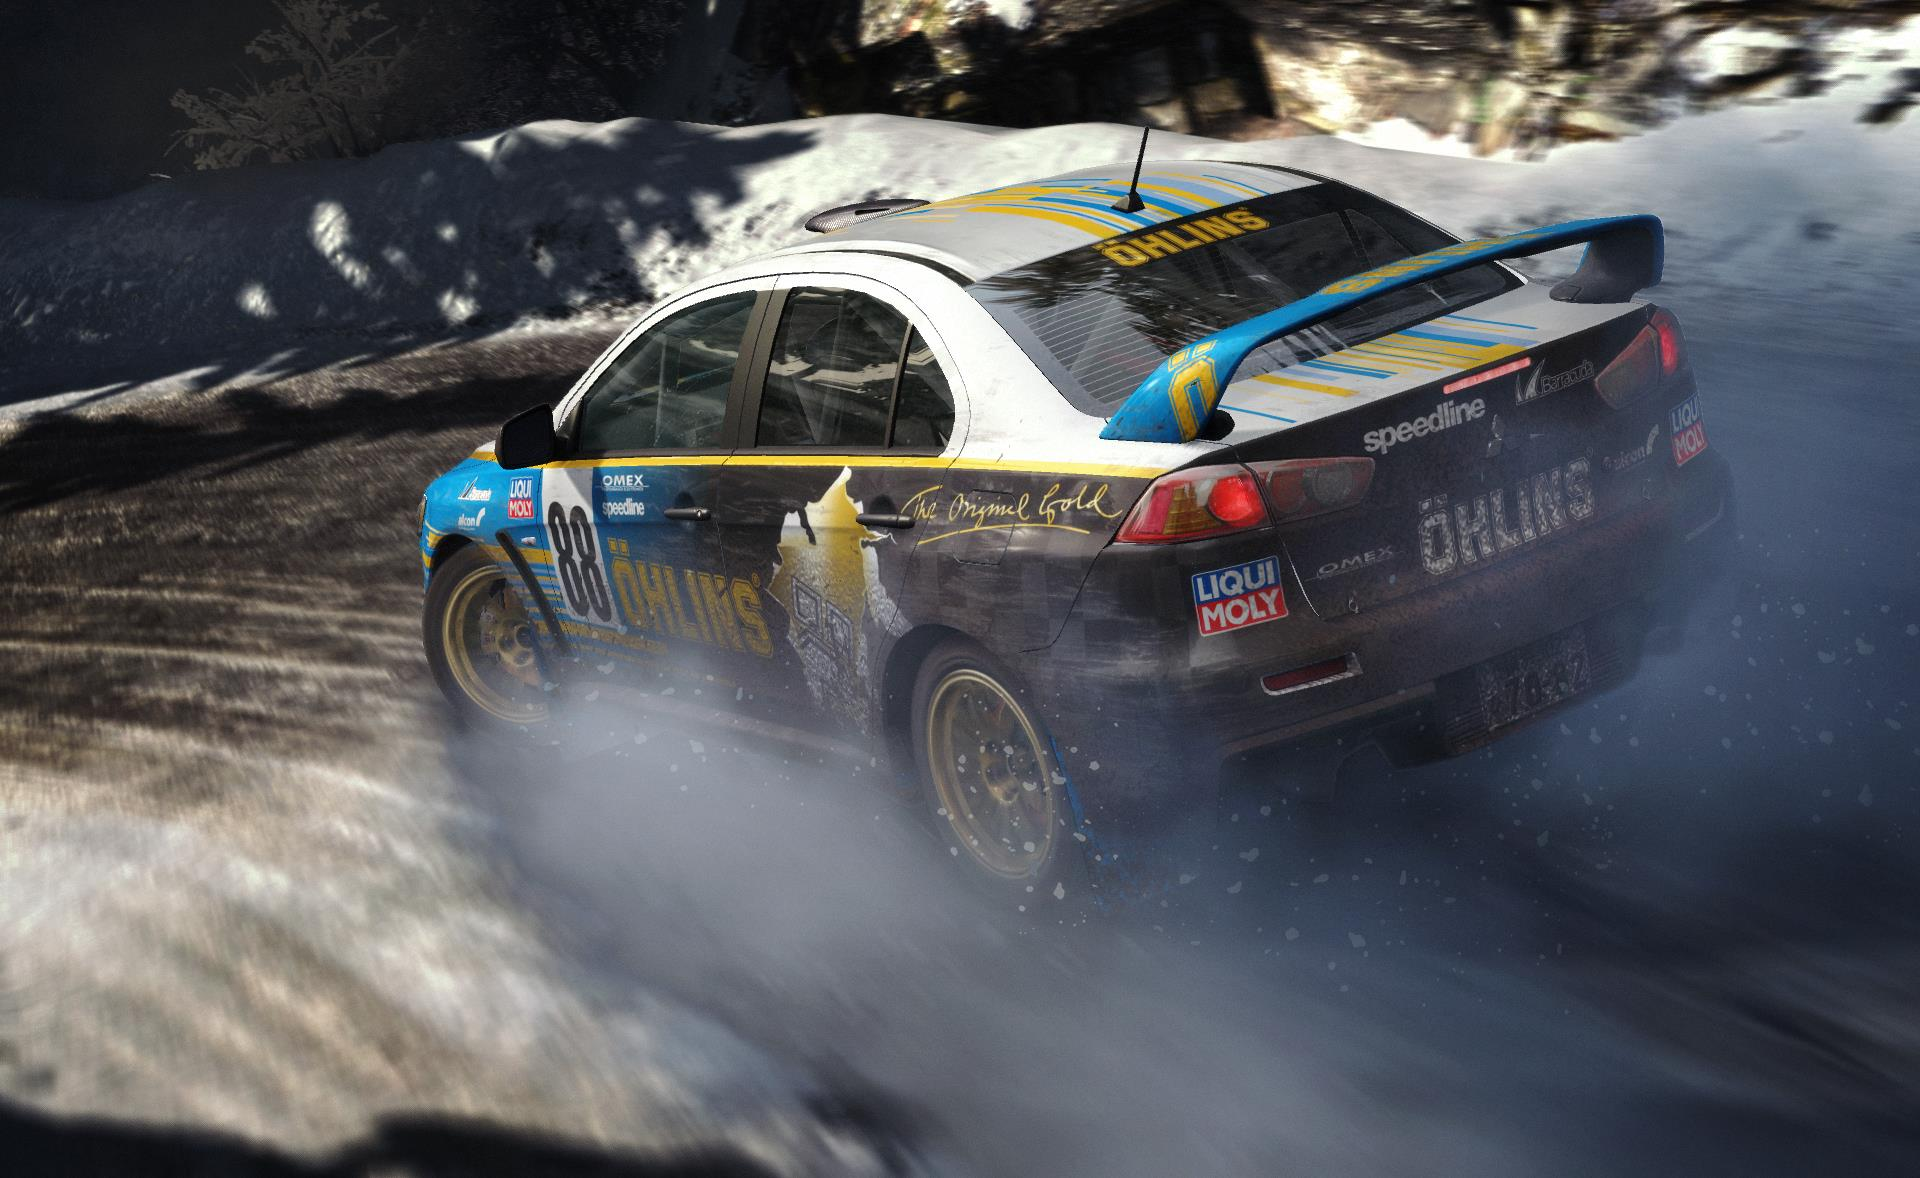 Dirt Rally gets four new modern cars in free update - VG247